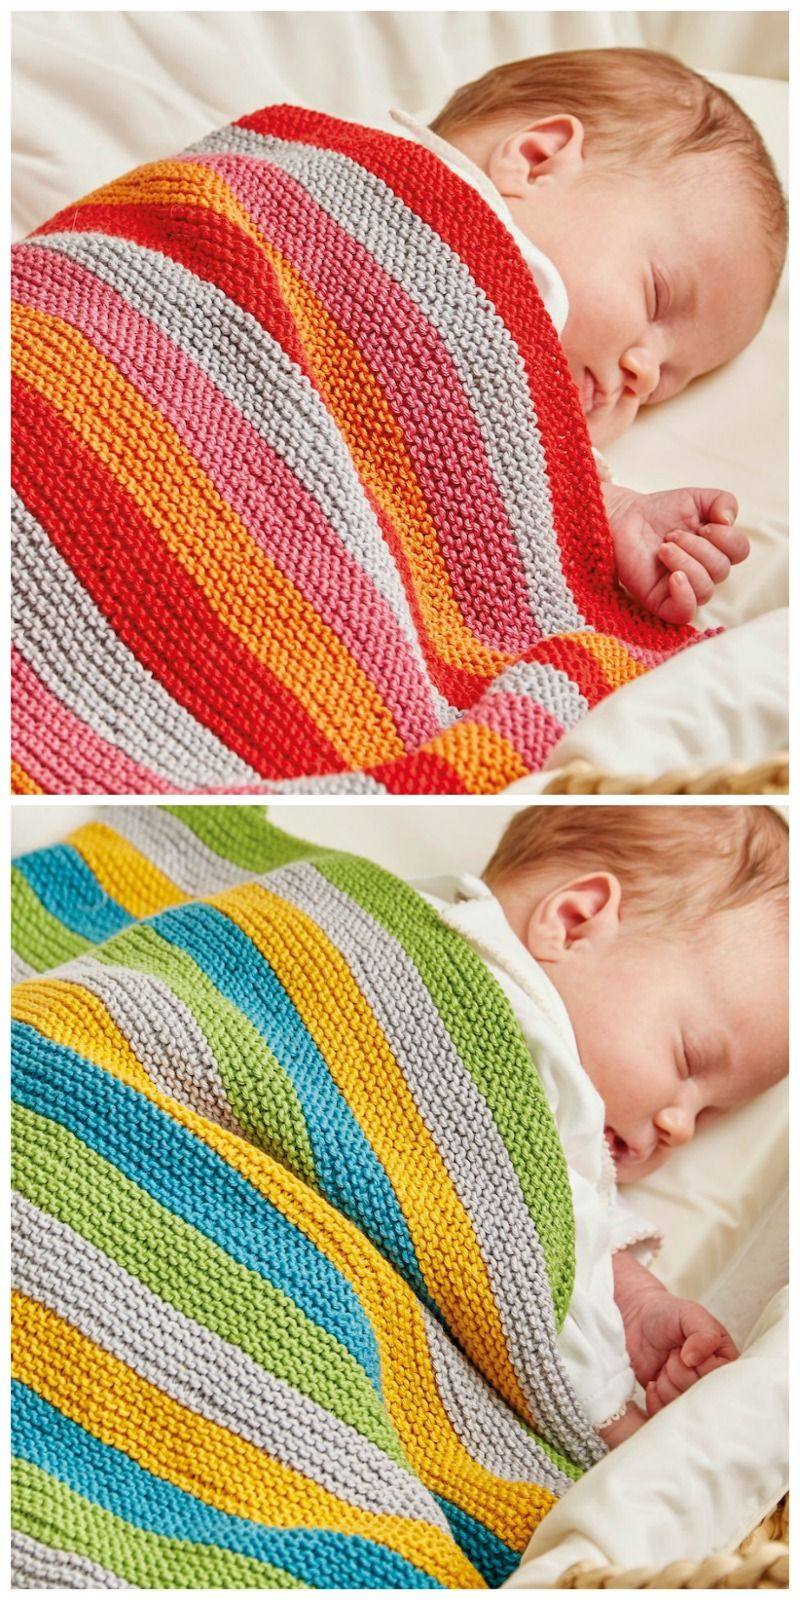 Knitted Nursery Collection: Ollie and Polly Blankets | Pinterest ...